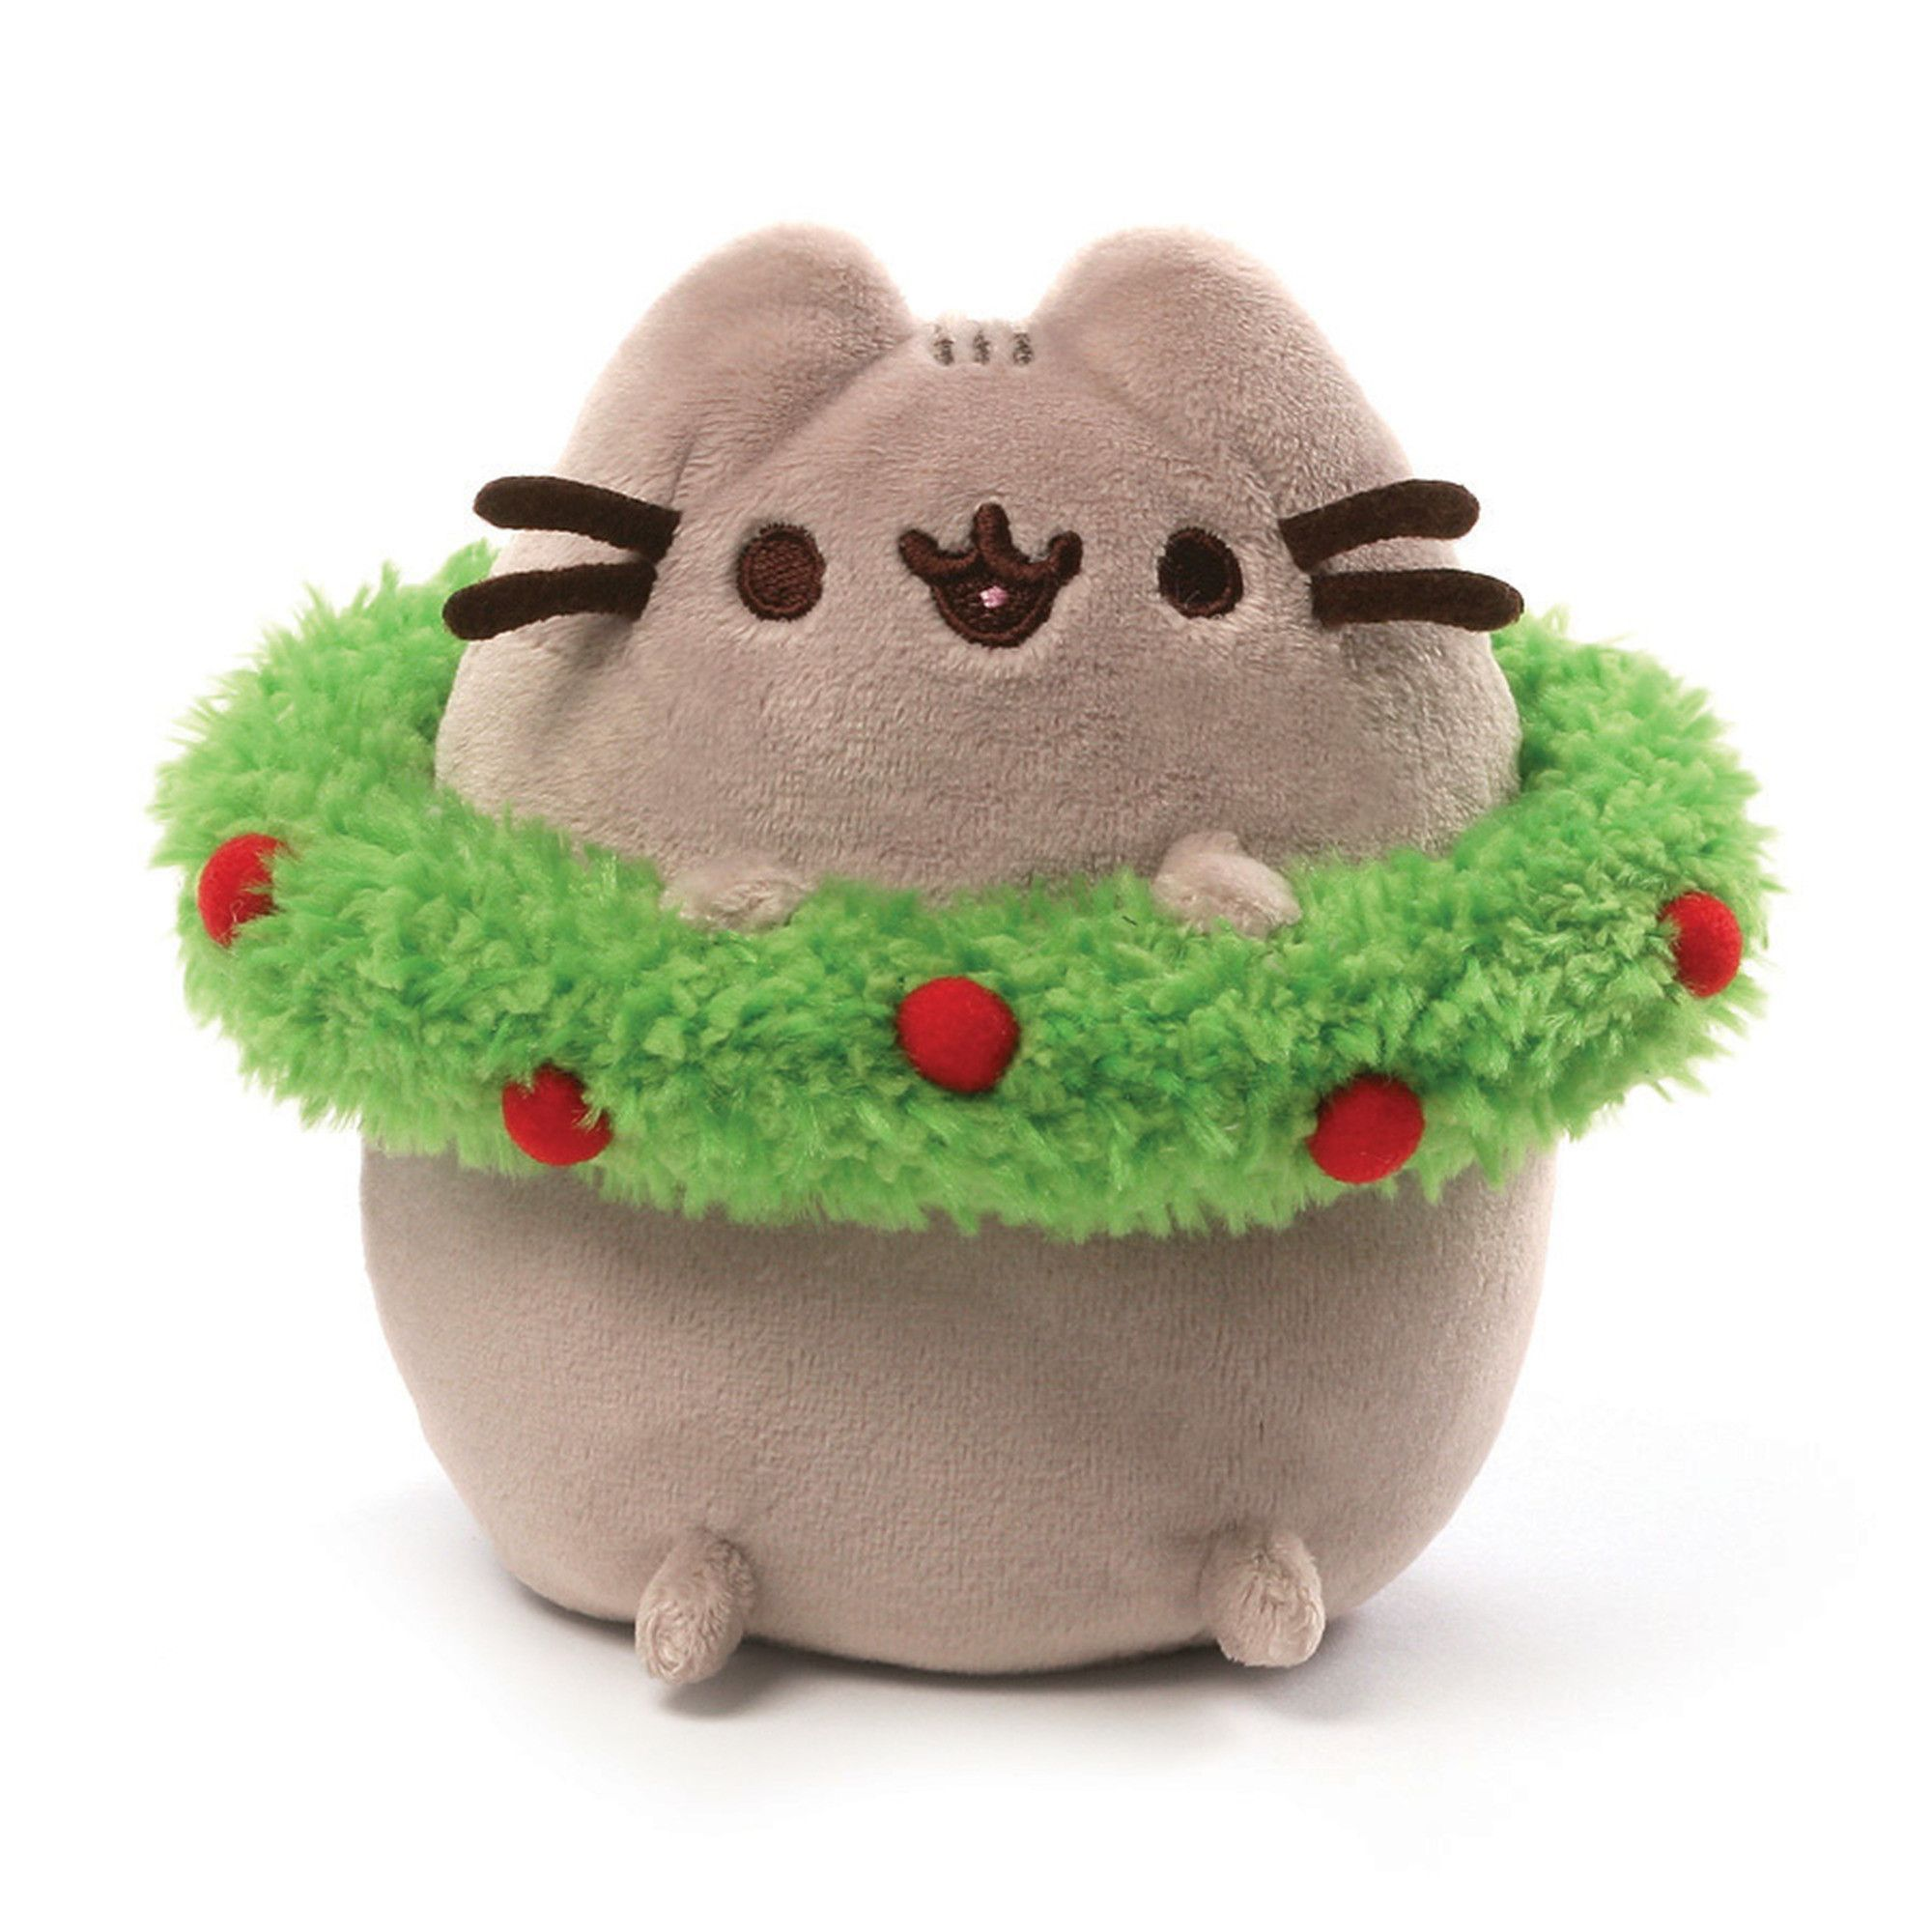 """This 4.5"""" Pusheen holiday plush is ready to celebrate the season with a festive red and green wreath. - Pusheen plush toy in classic pose brings adorable web comic to life - Features cute holiday-them"""